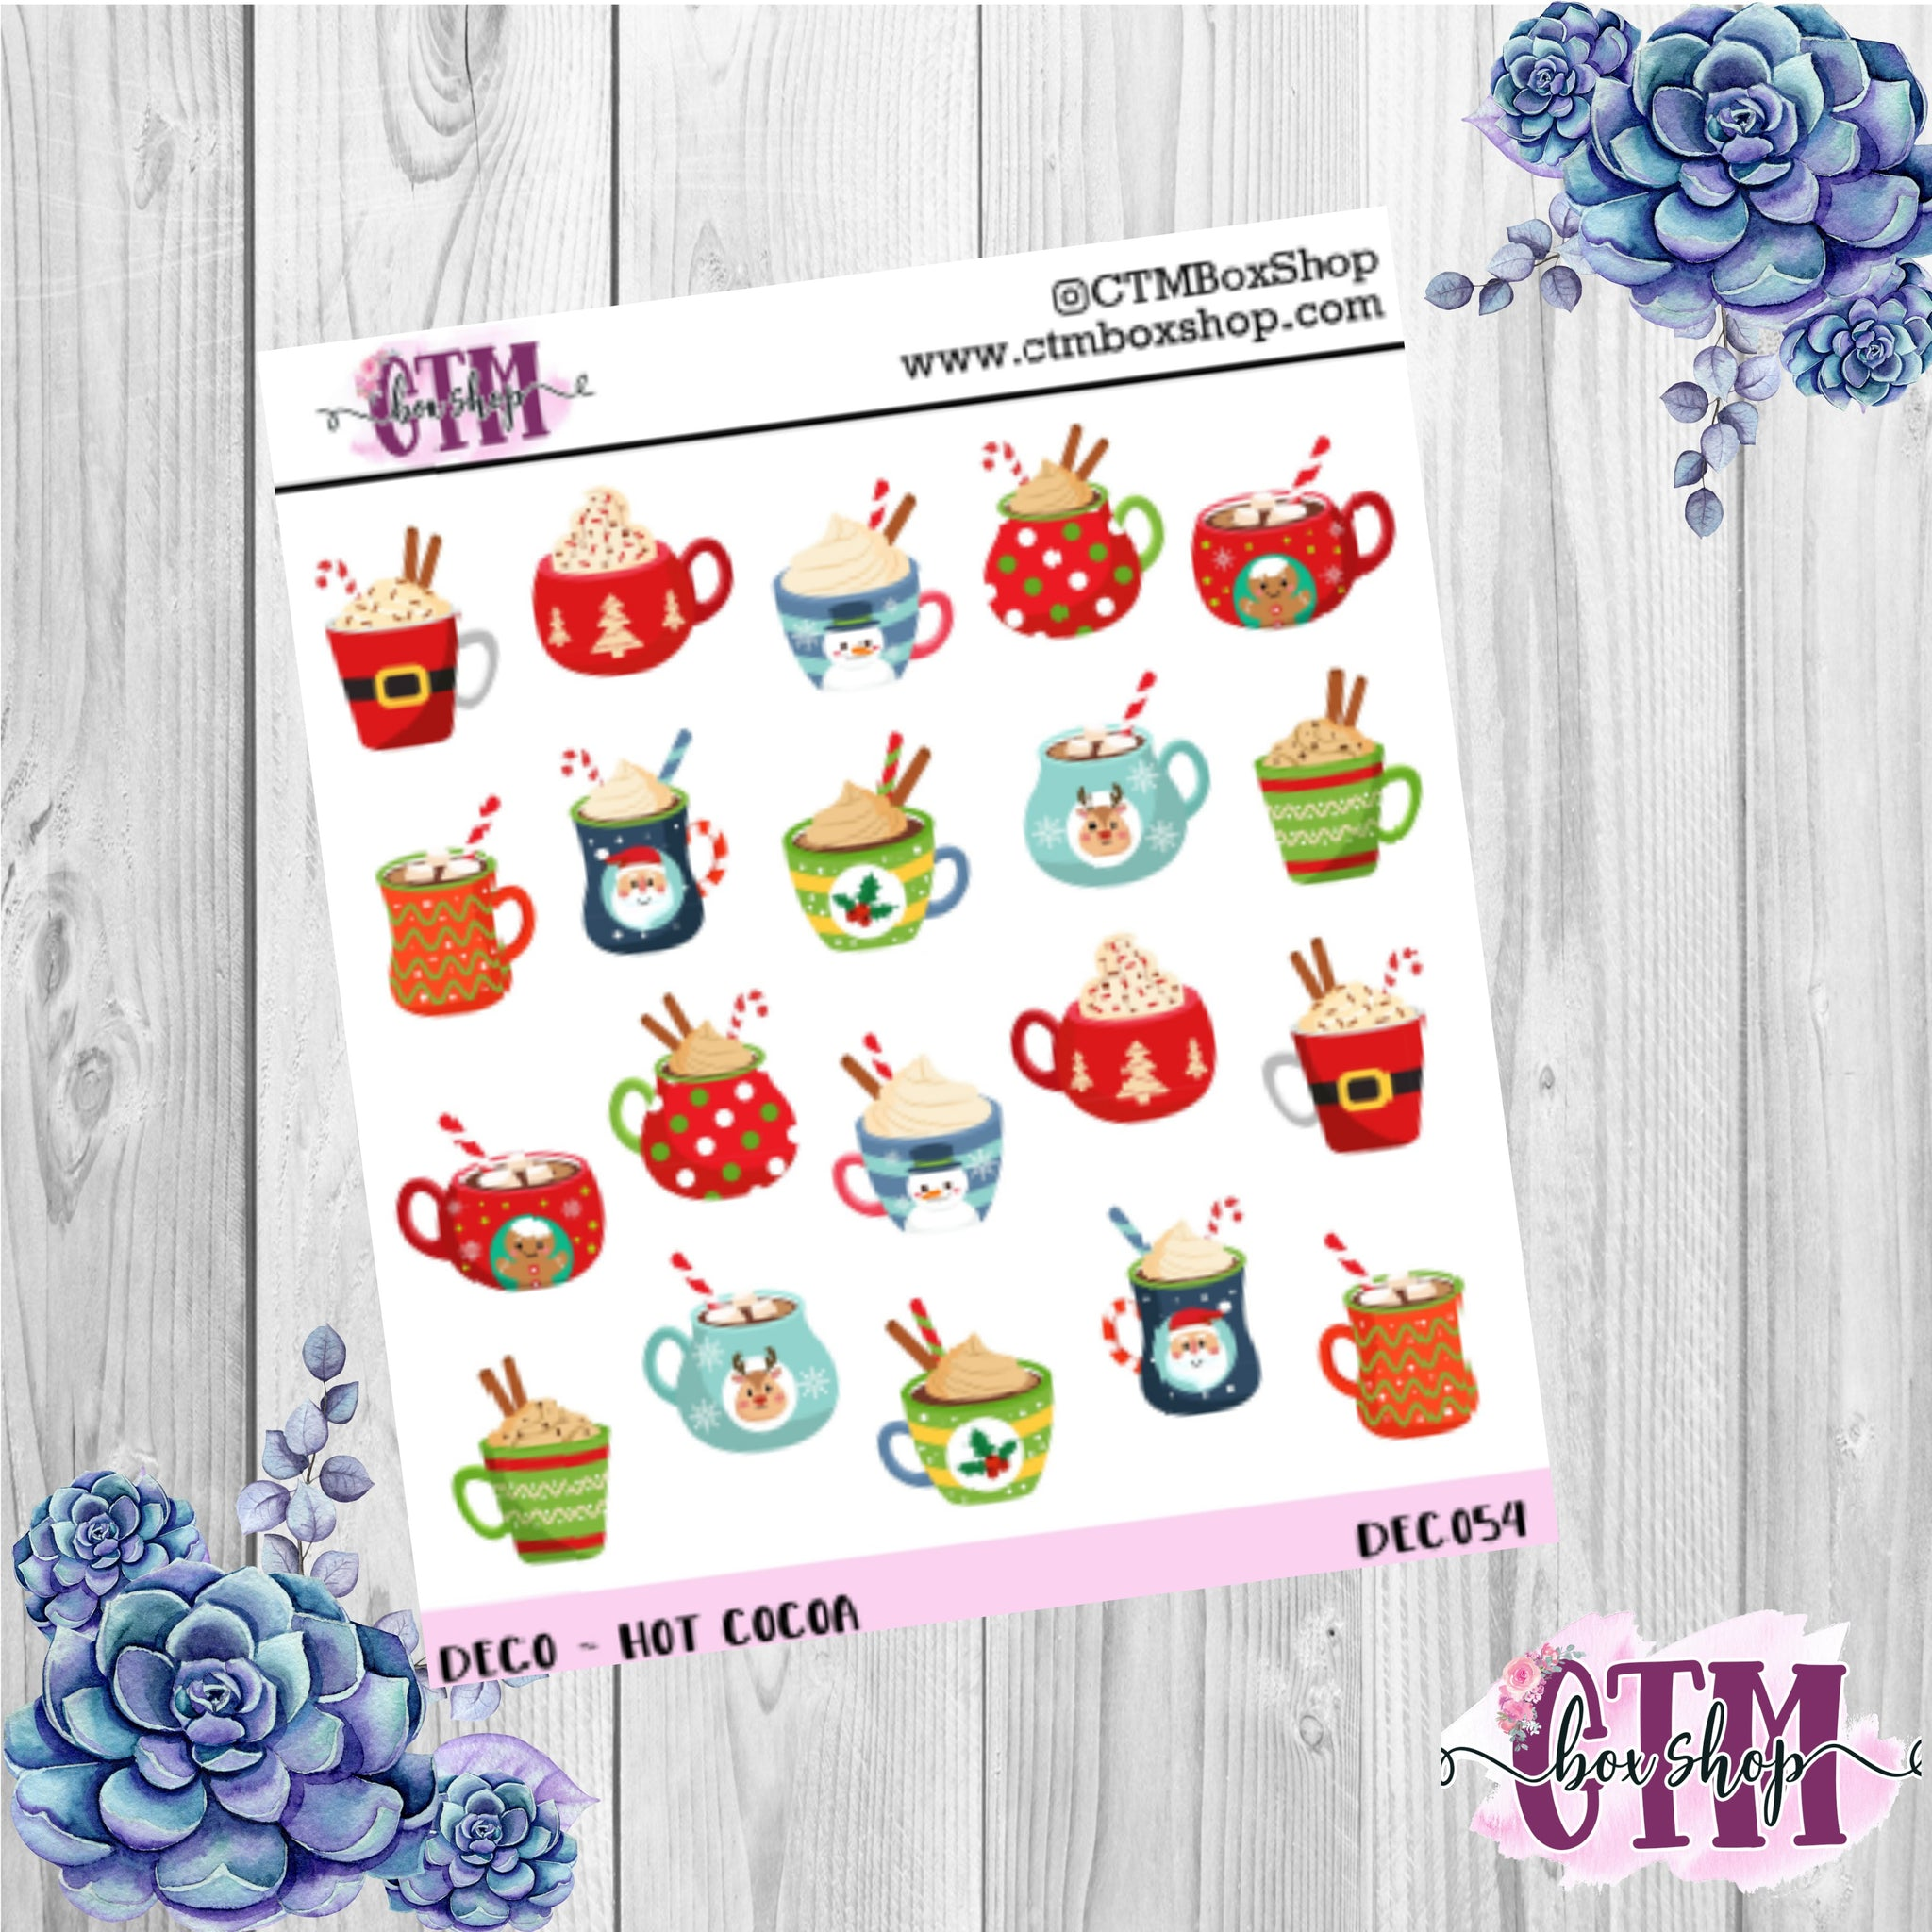 Holiday Coco deco stickers, deco stickers, Christmas stickers, planner stickers